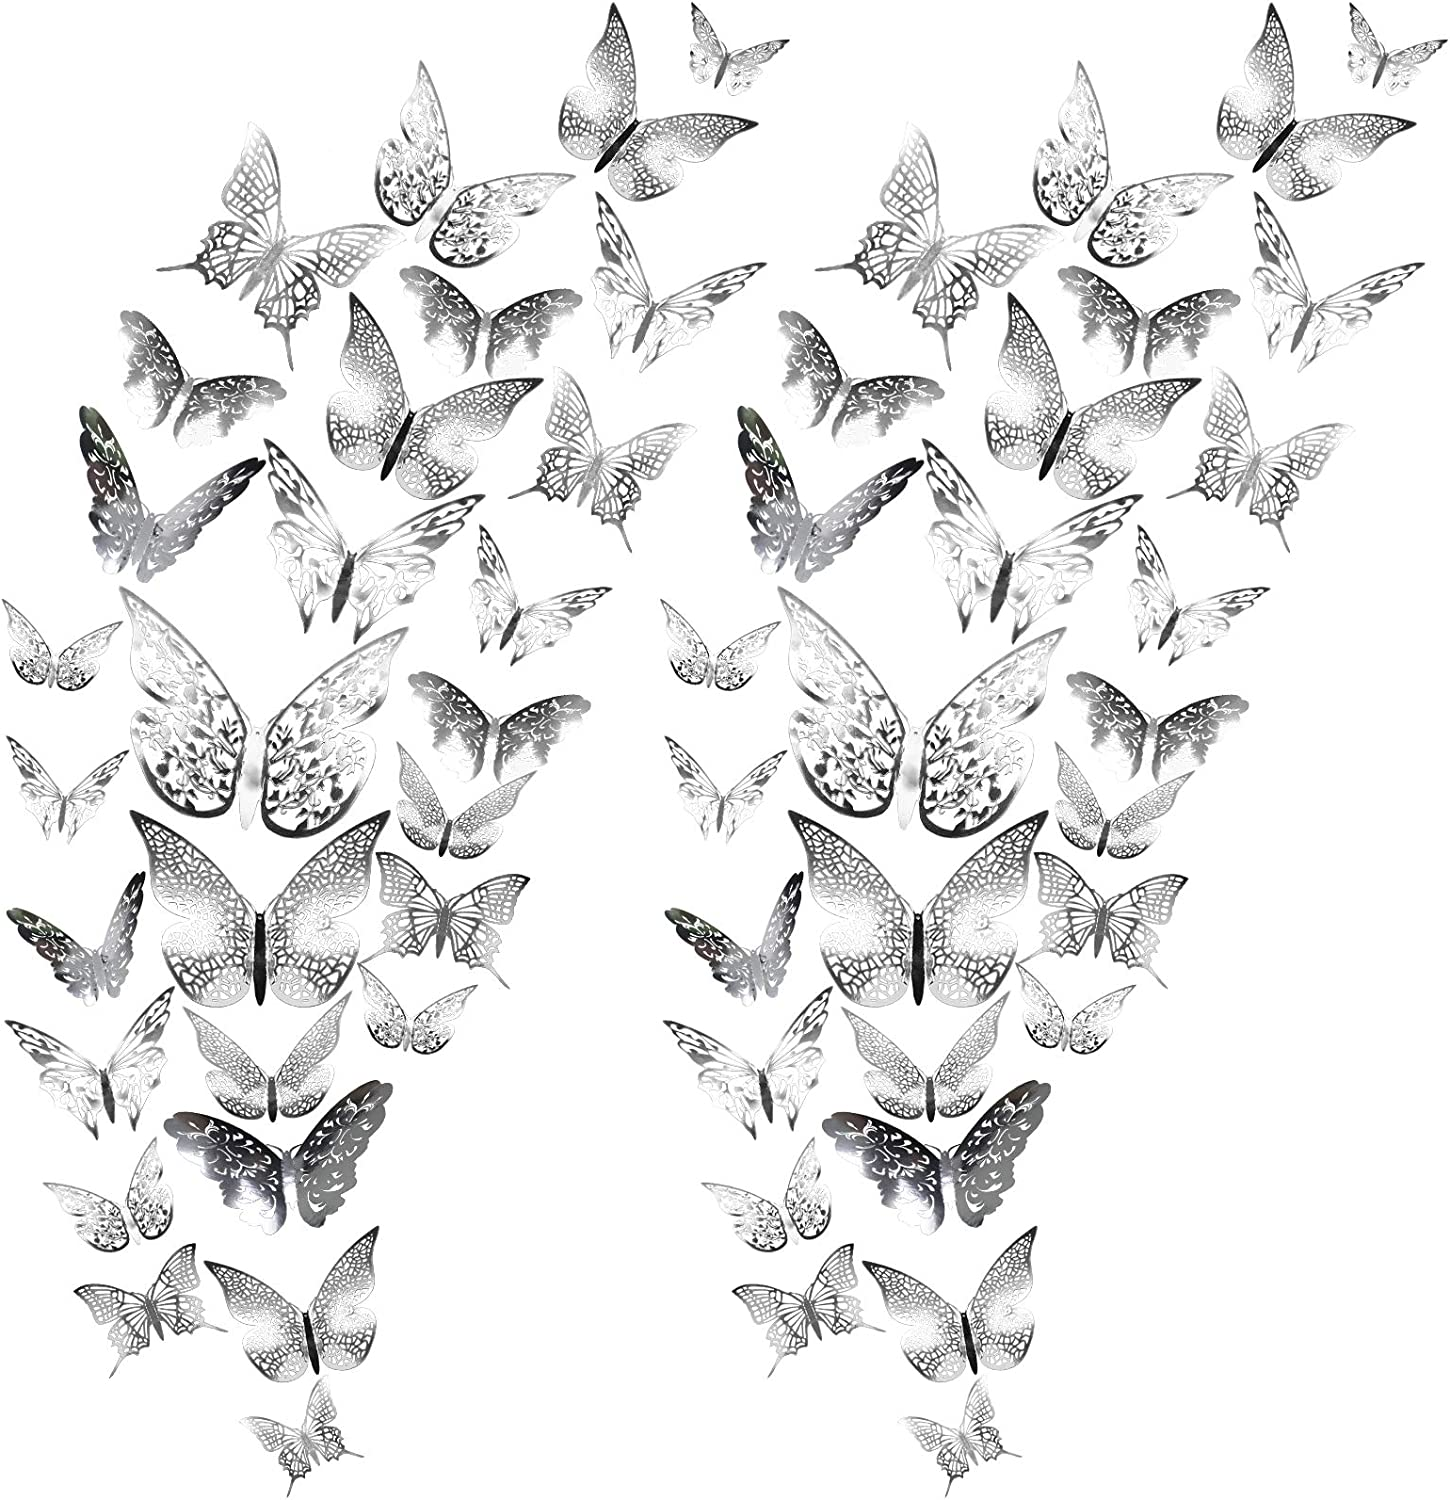 LASZOLA 72Pcs 3D Butterfly Wall Decor Sticker for Bedroom, 6 Style Removable Mural DIY Metallic Butterflies Wall Decals in 3 Size for Home Room Nursery Decoration (Silver)